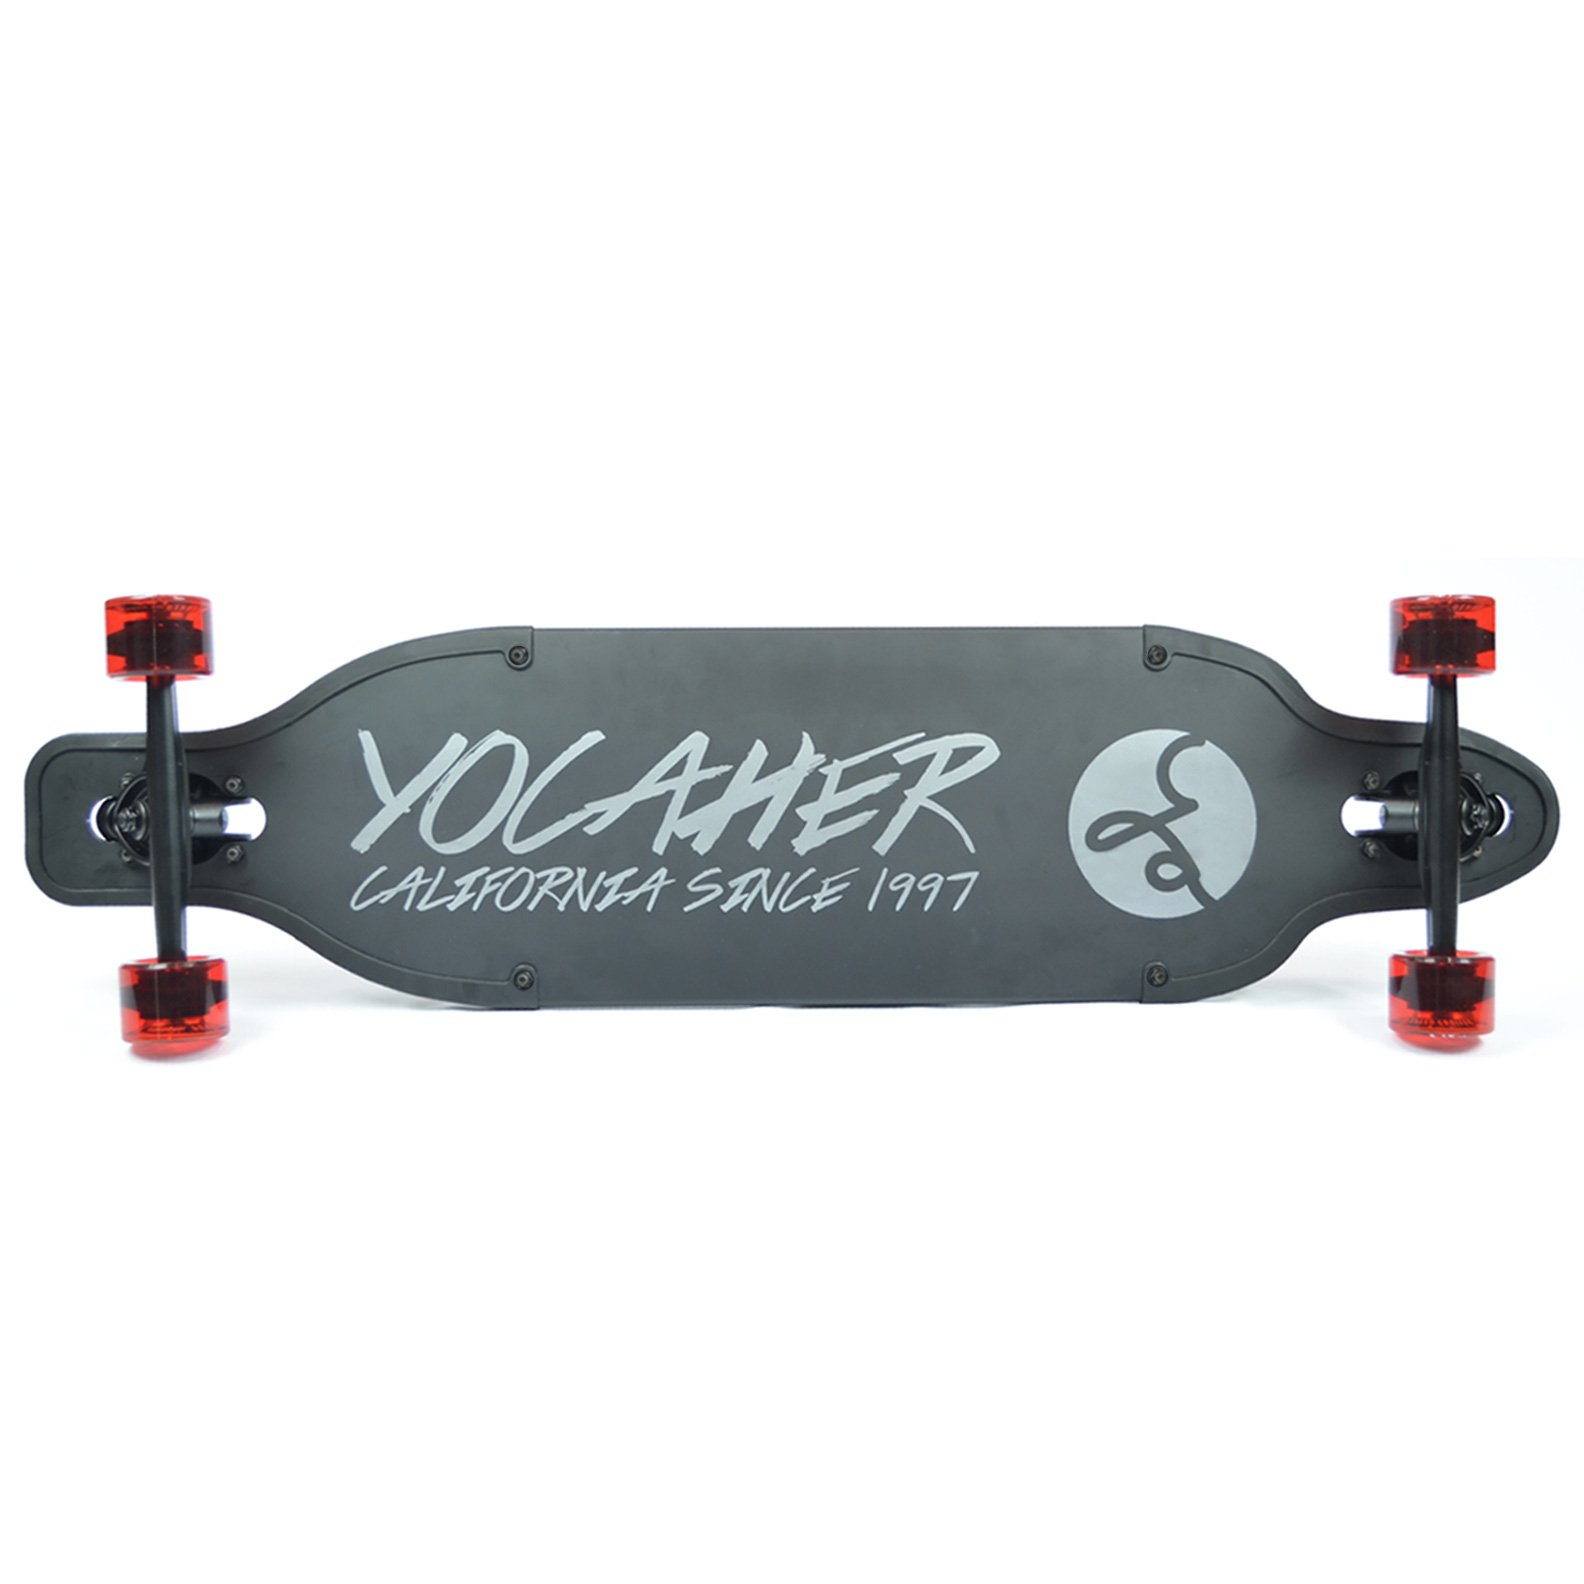 Yocaher Aluminum Drop Through Complete longboard - Gold and Black - 36 inch boards (Black)